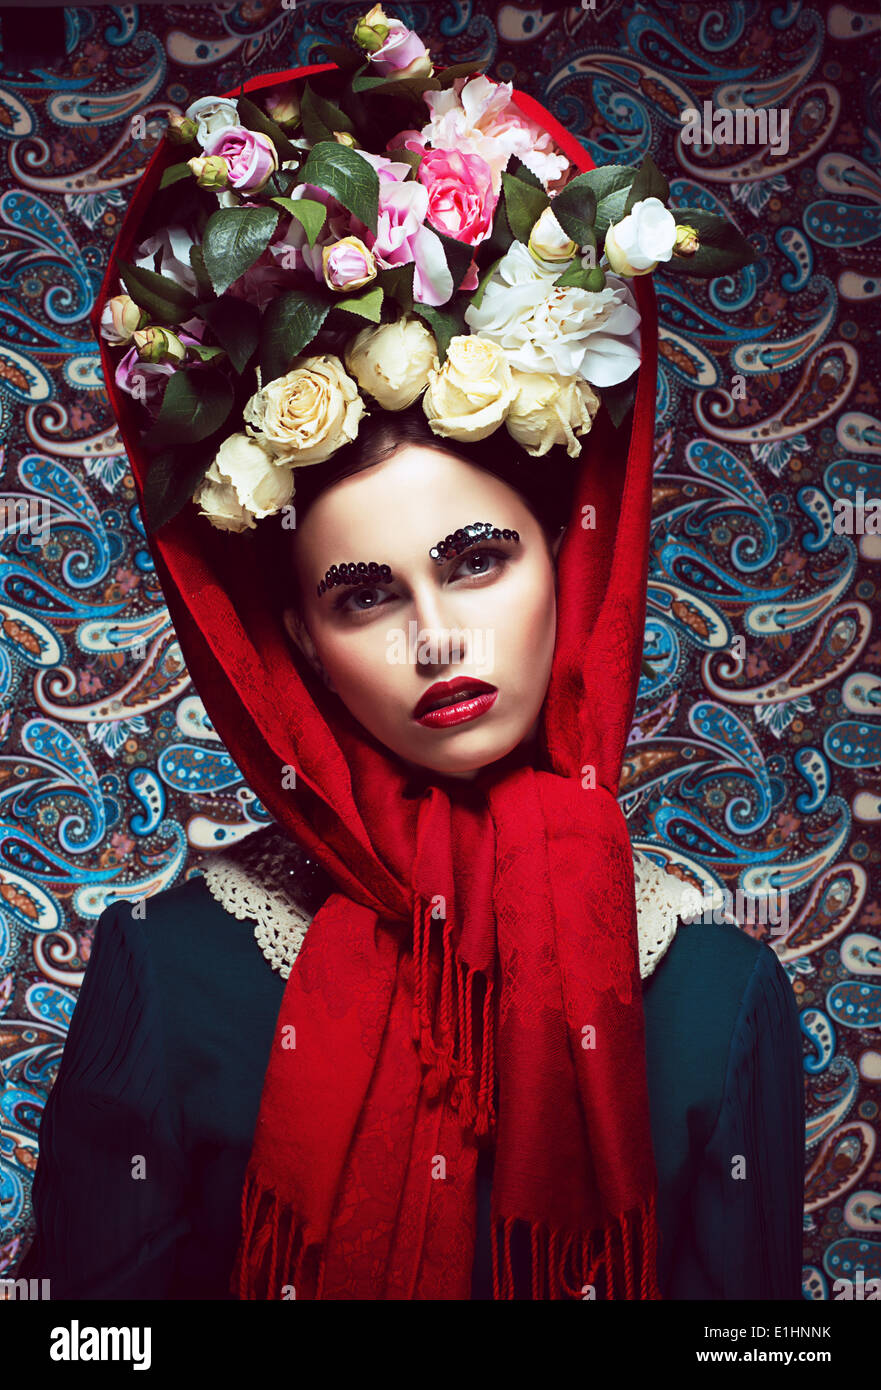 Vintage. Woman in Red Shawl and wreath of Roses. Retro - Stock Image